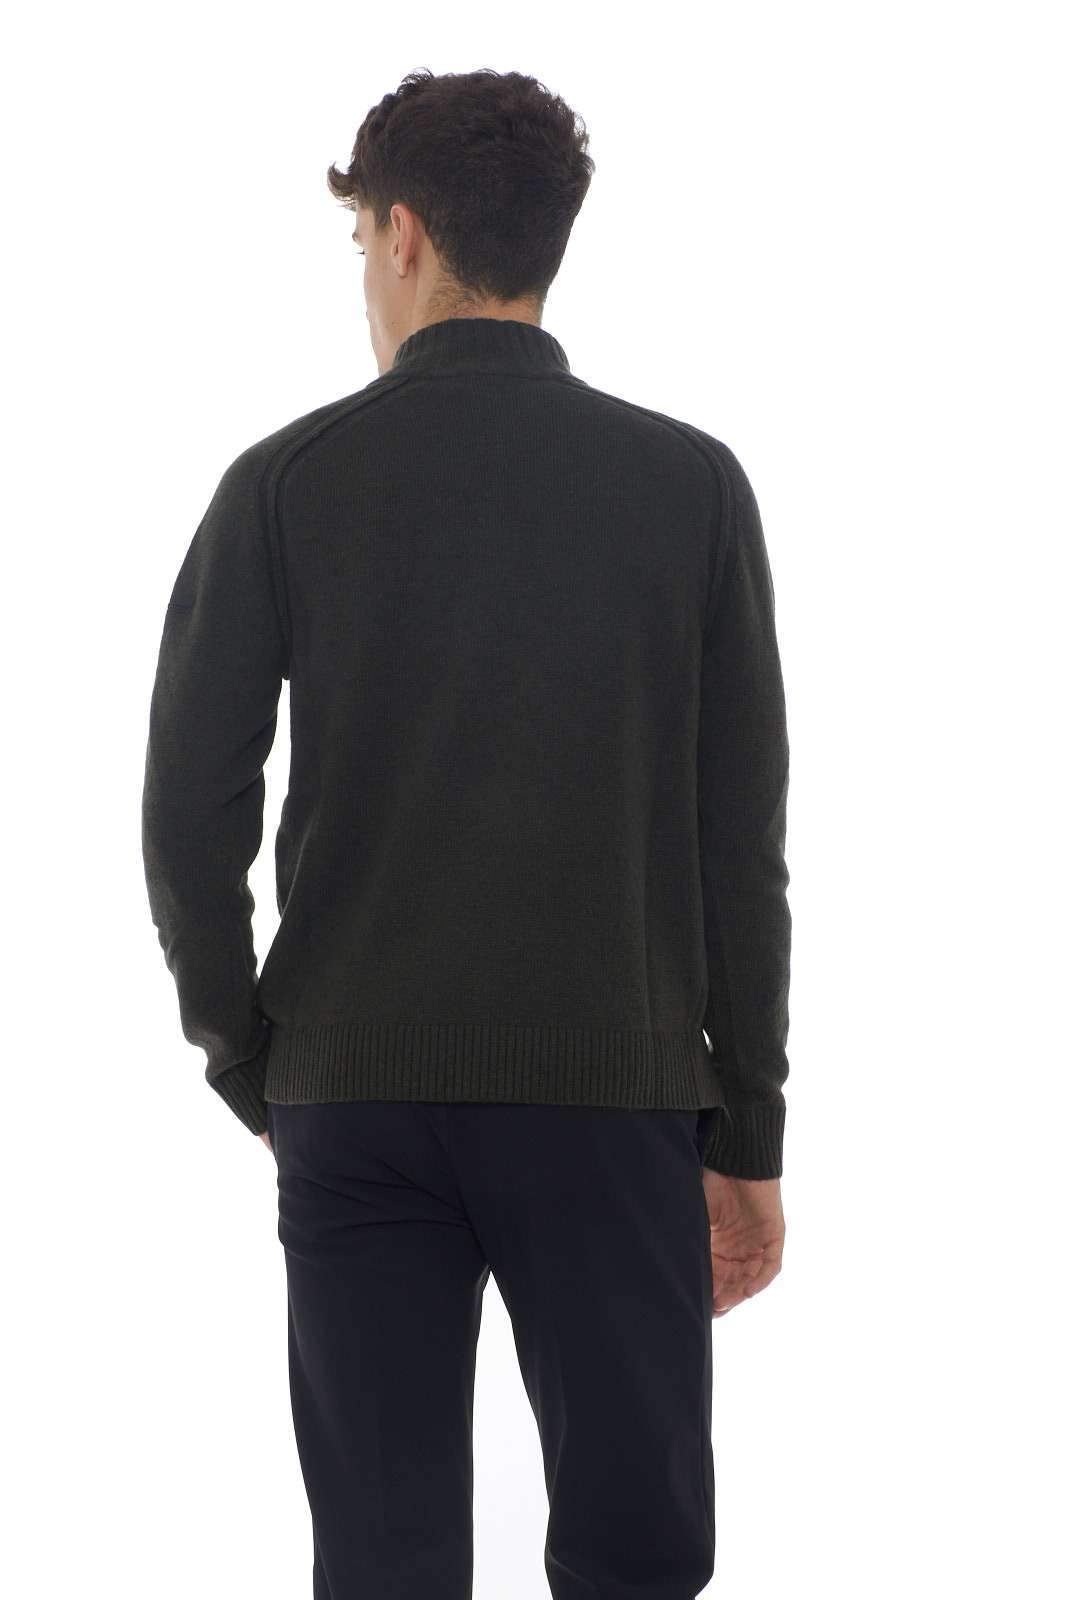 https://www.parmax.com/media/catalog/product/a/i/AI-outlet_parmax-maglia-uomo-RRD-W19131-C.jpg